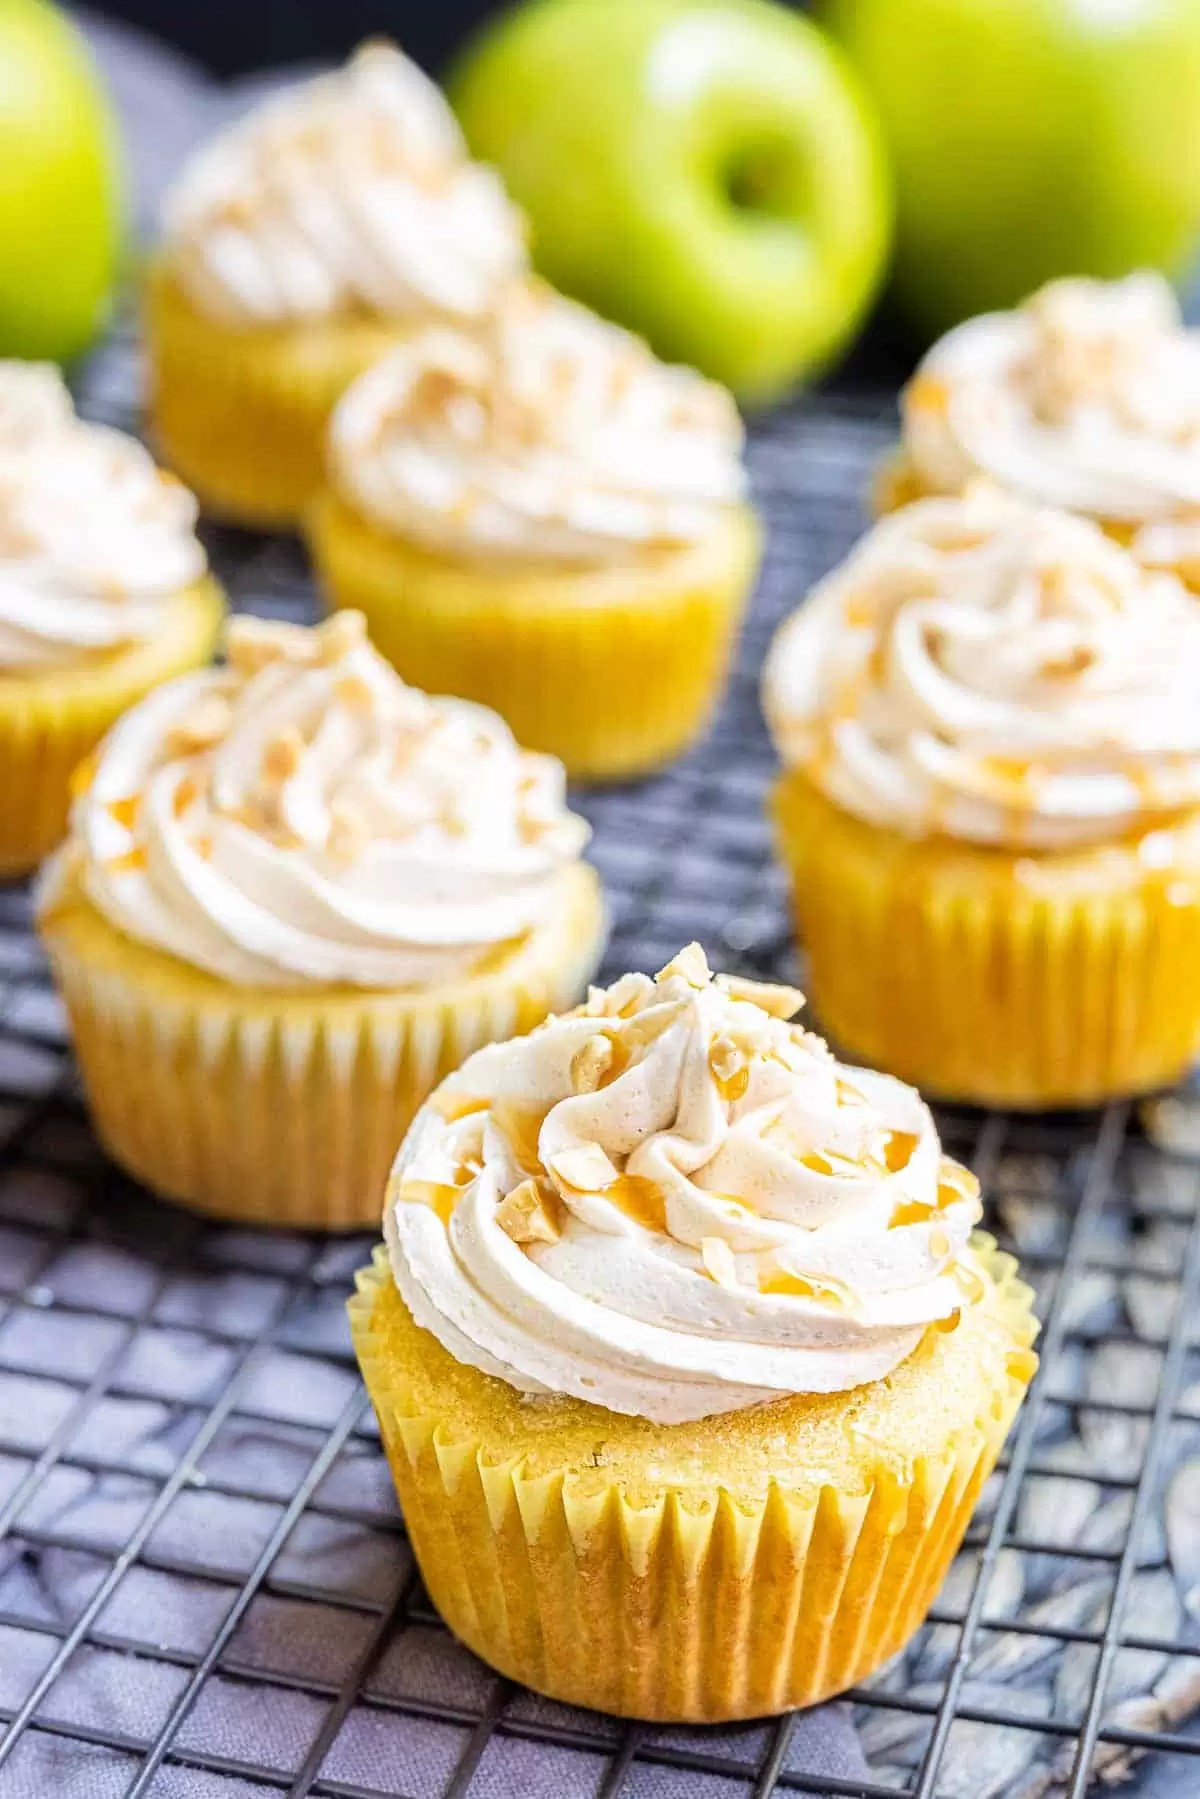 Caramel apple cupcakes with a drizzle of caramel sauce on top.